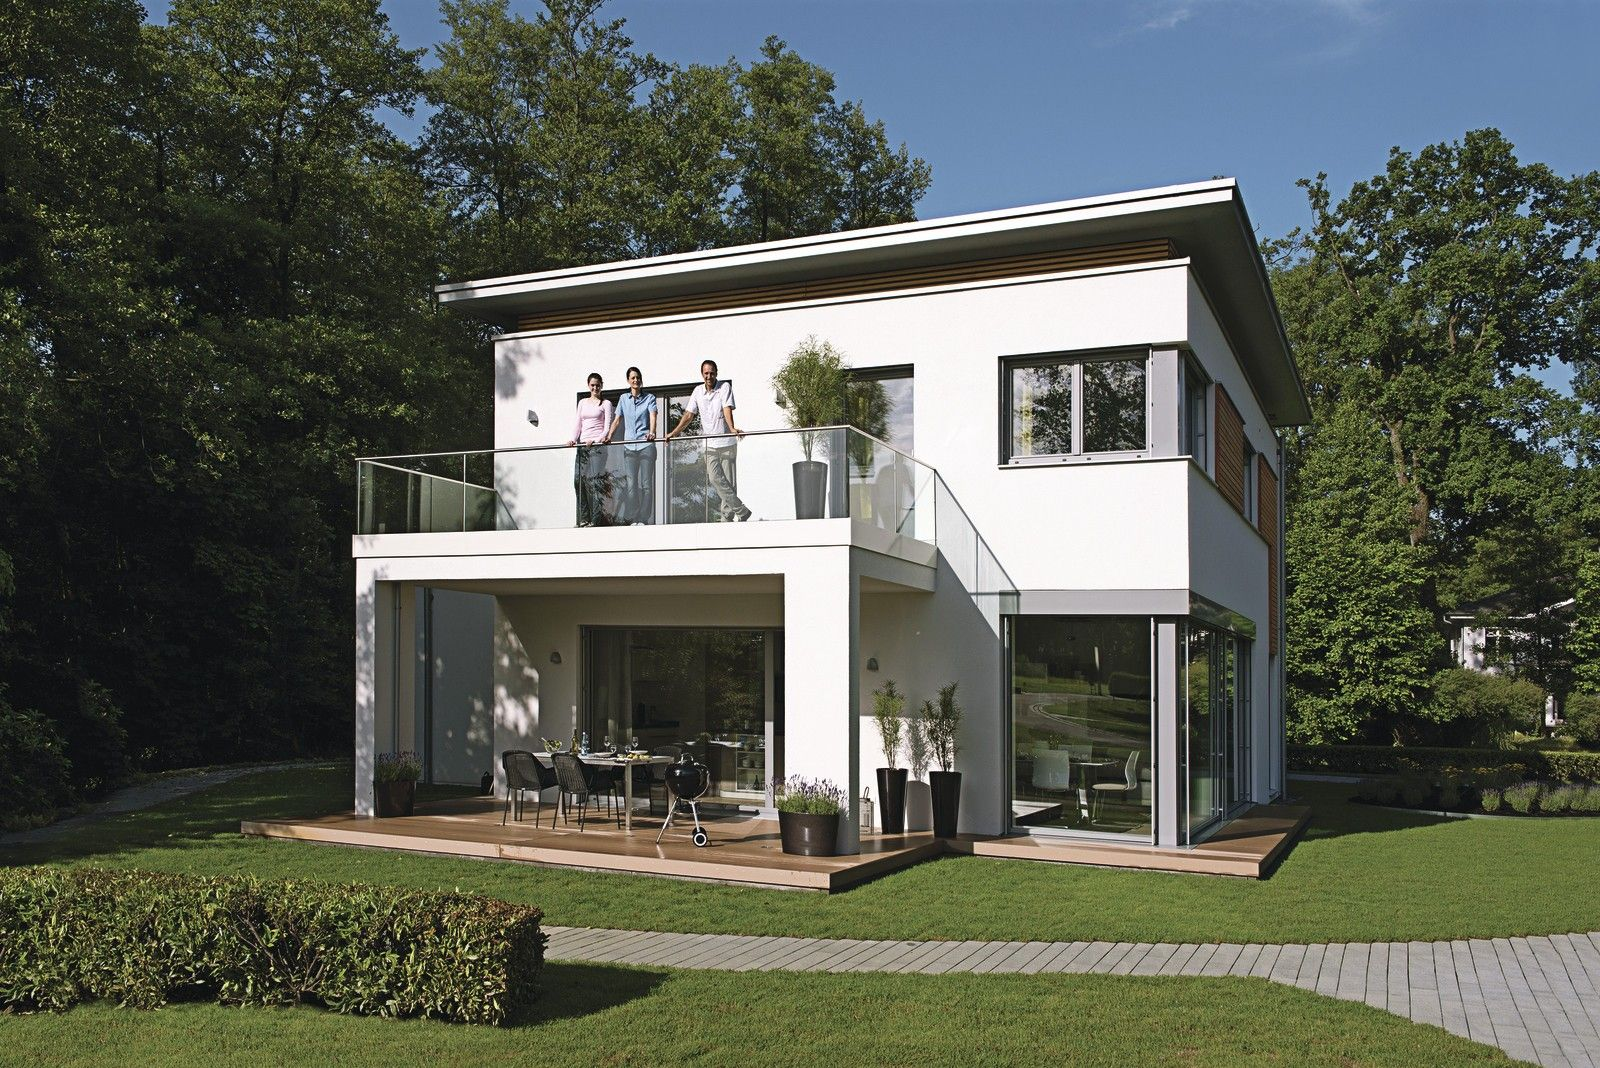 bauhaus wuppertal gartenhaus my blog. Black Bedroom Furniture Sets. Home Design Ideas